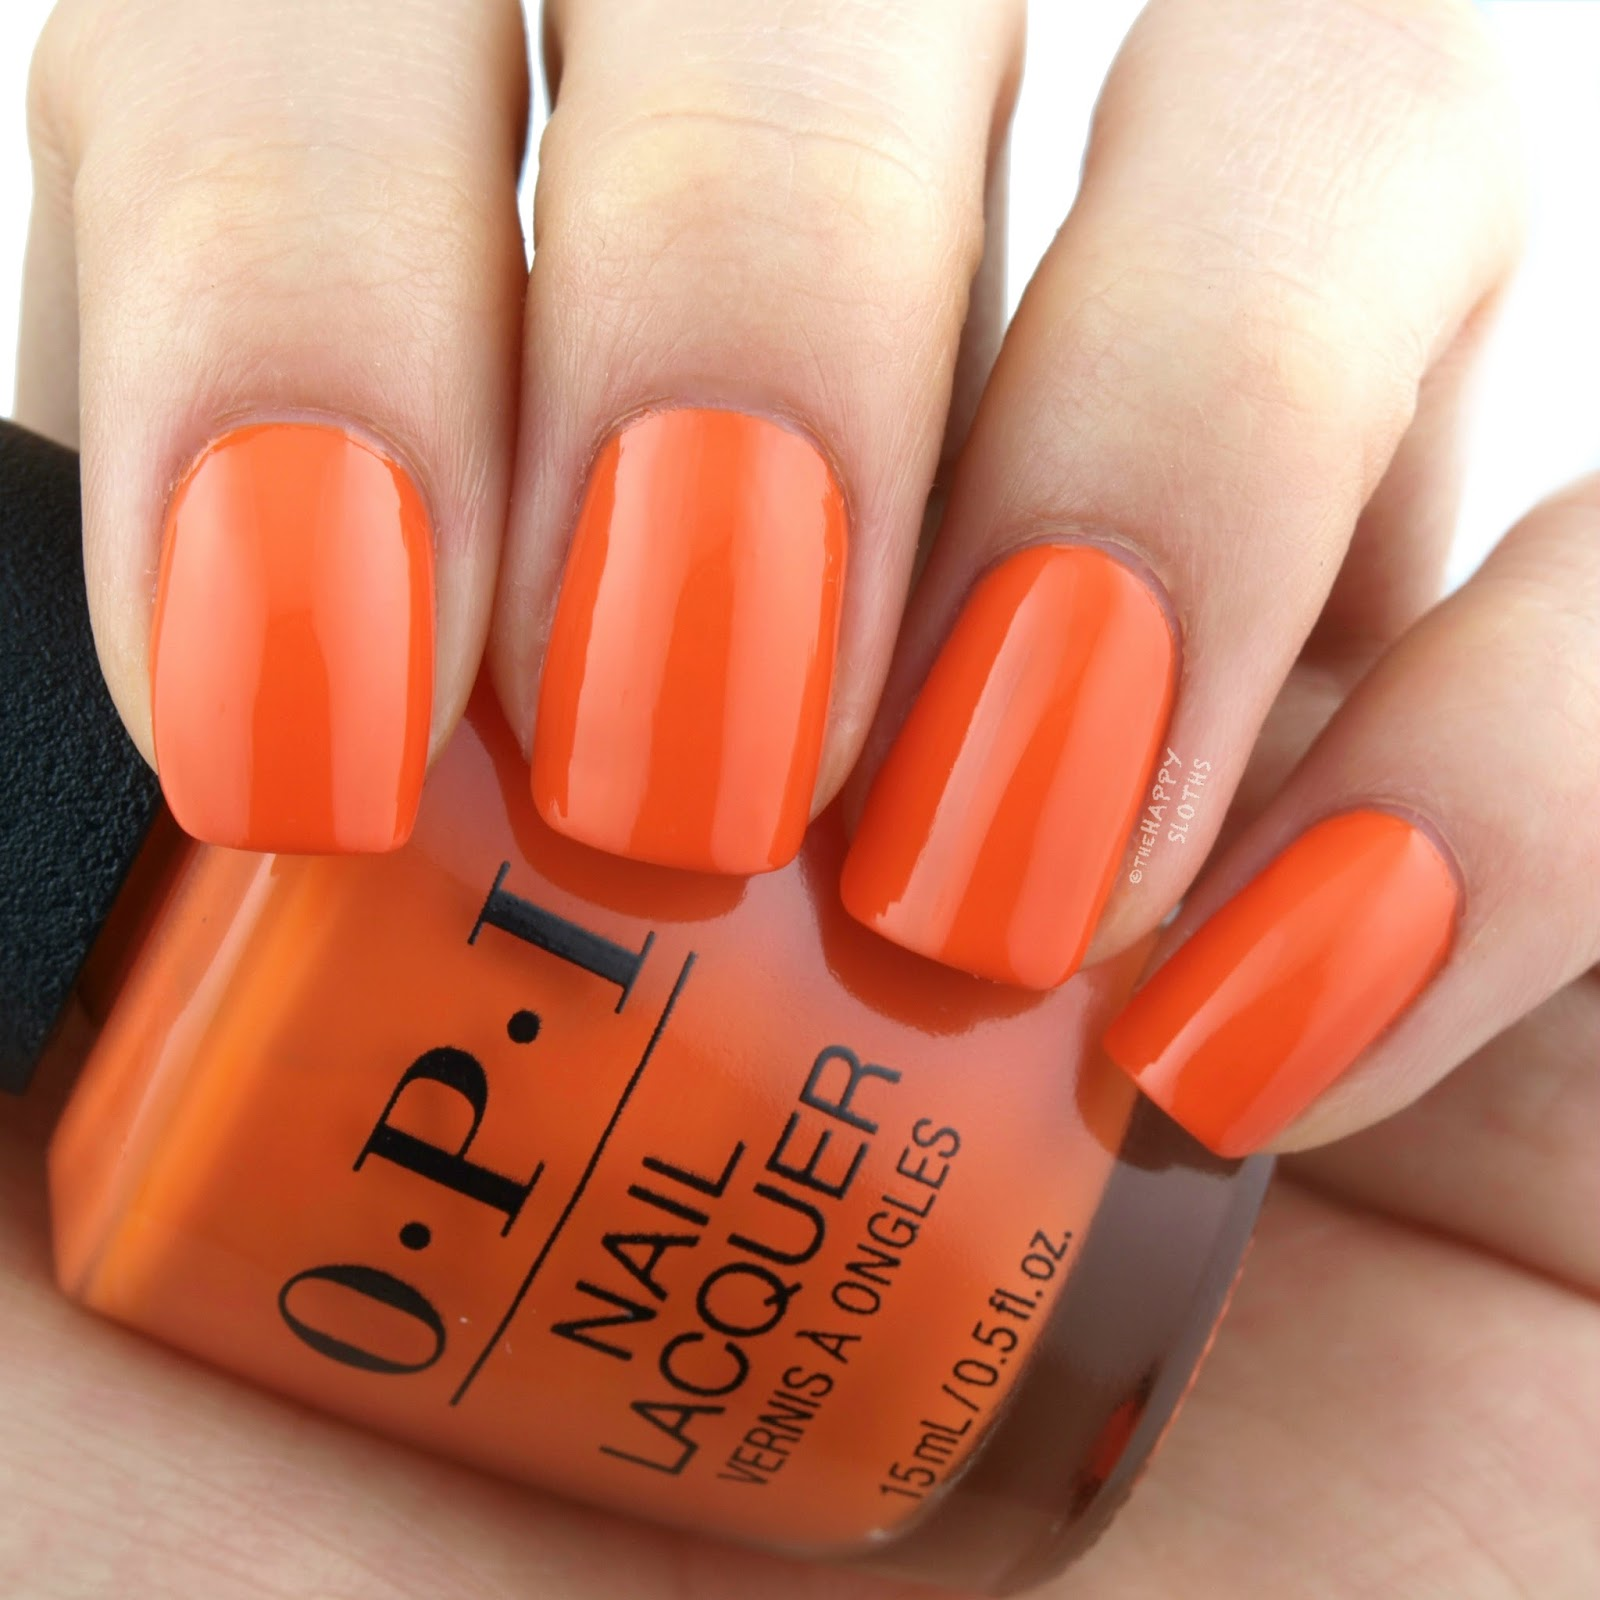 OPI Grease Collection | Summer Lovin' Having a Blast!: Review and Swatches